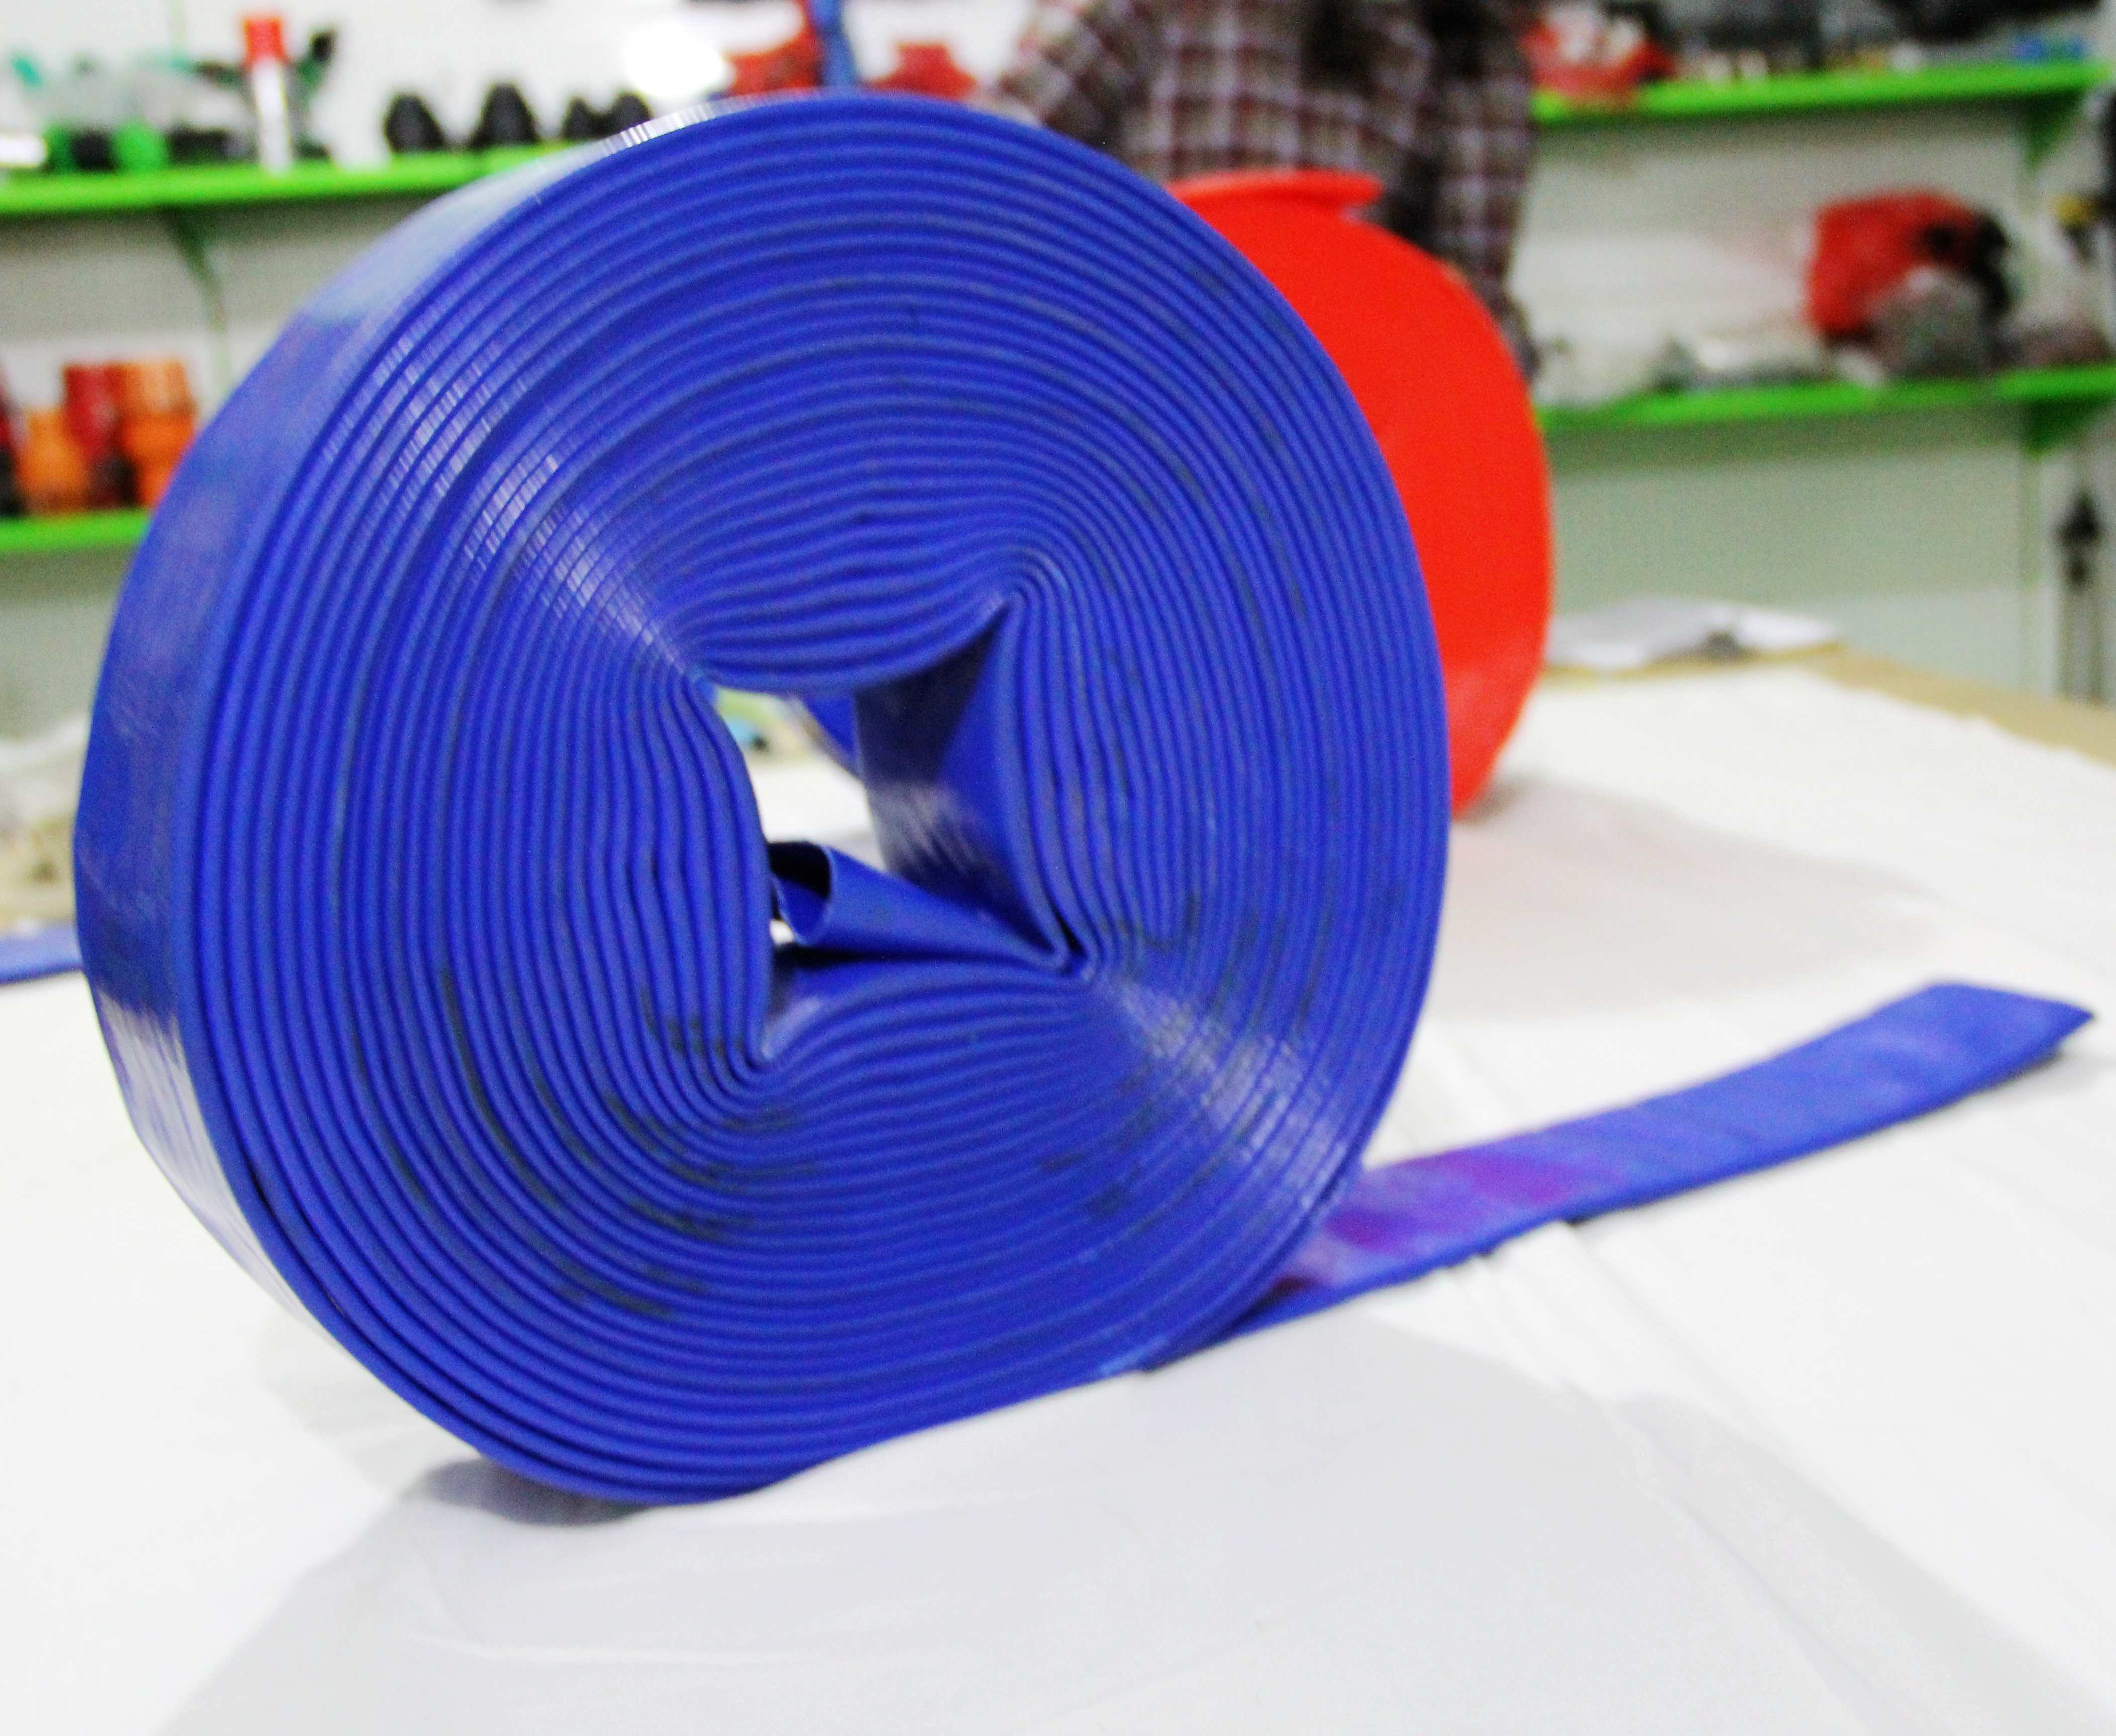 2 Inch Hot Selling PVC Plastic Pipe/Hoe